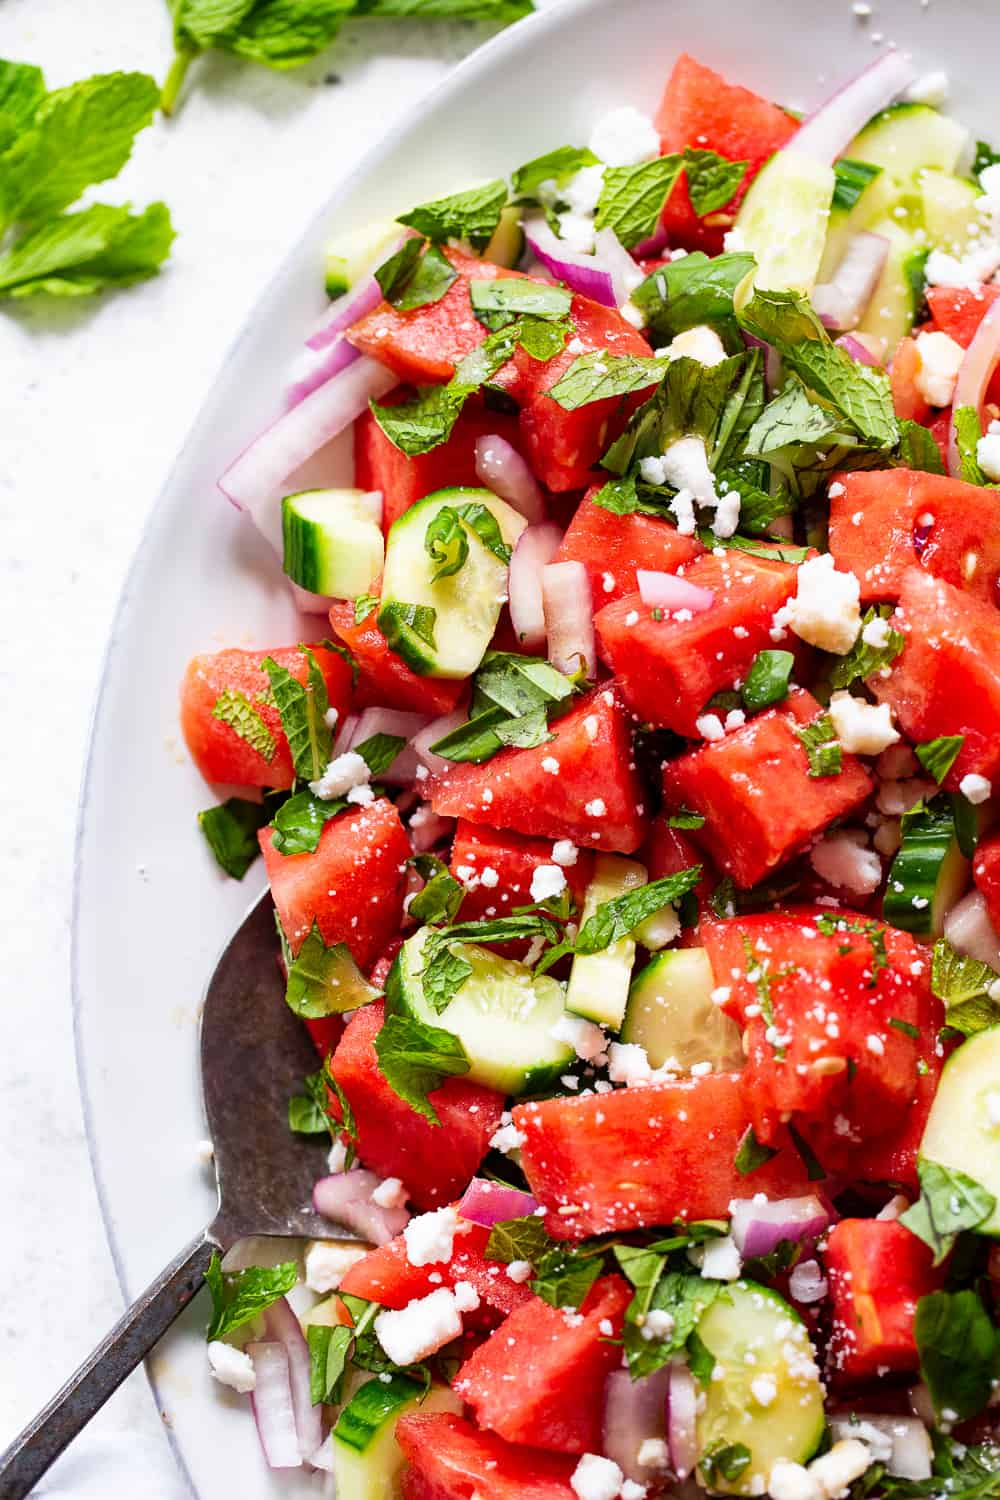 This simple and refreshing watermelon salad has all the flavors you're craving!  Juicy watermelon with cucumber, red onion, basil, mint and dairy free feta cheese tossed in a super simple vinaigrette.  It's healthy, paleo, vegan, and perfect for hot summer BBQs and picnics! #paleo #vegan #cleaneating